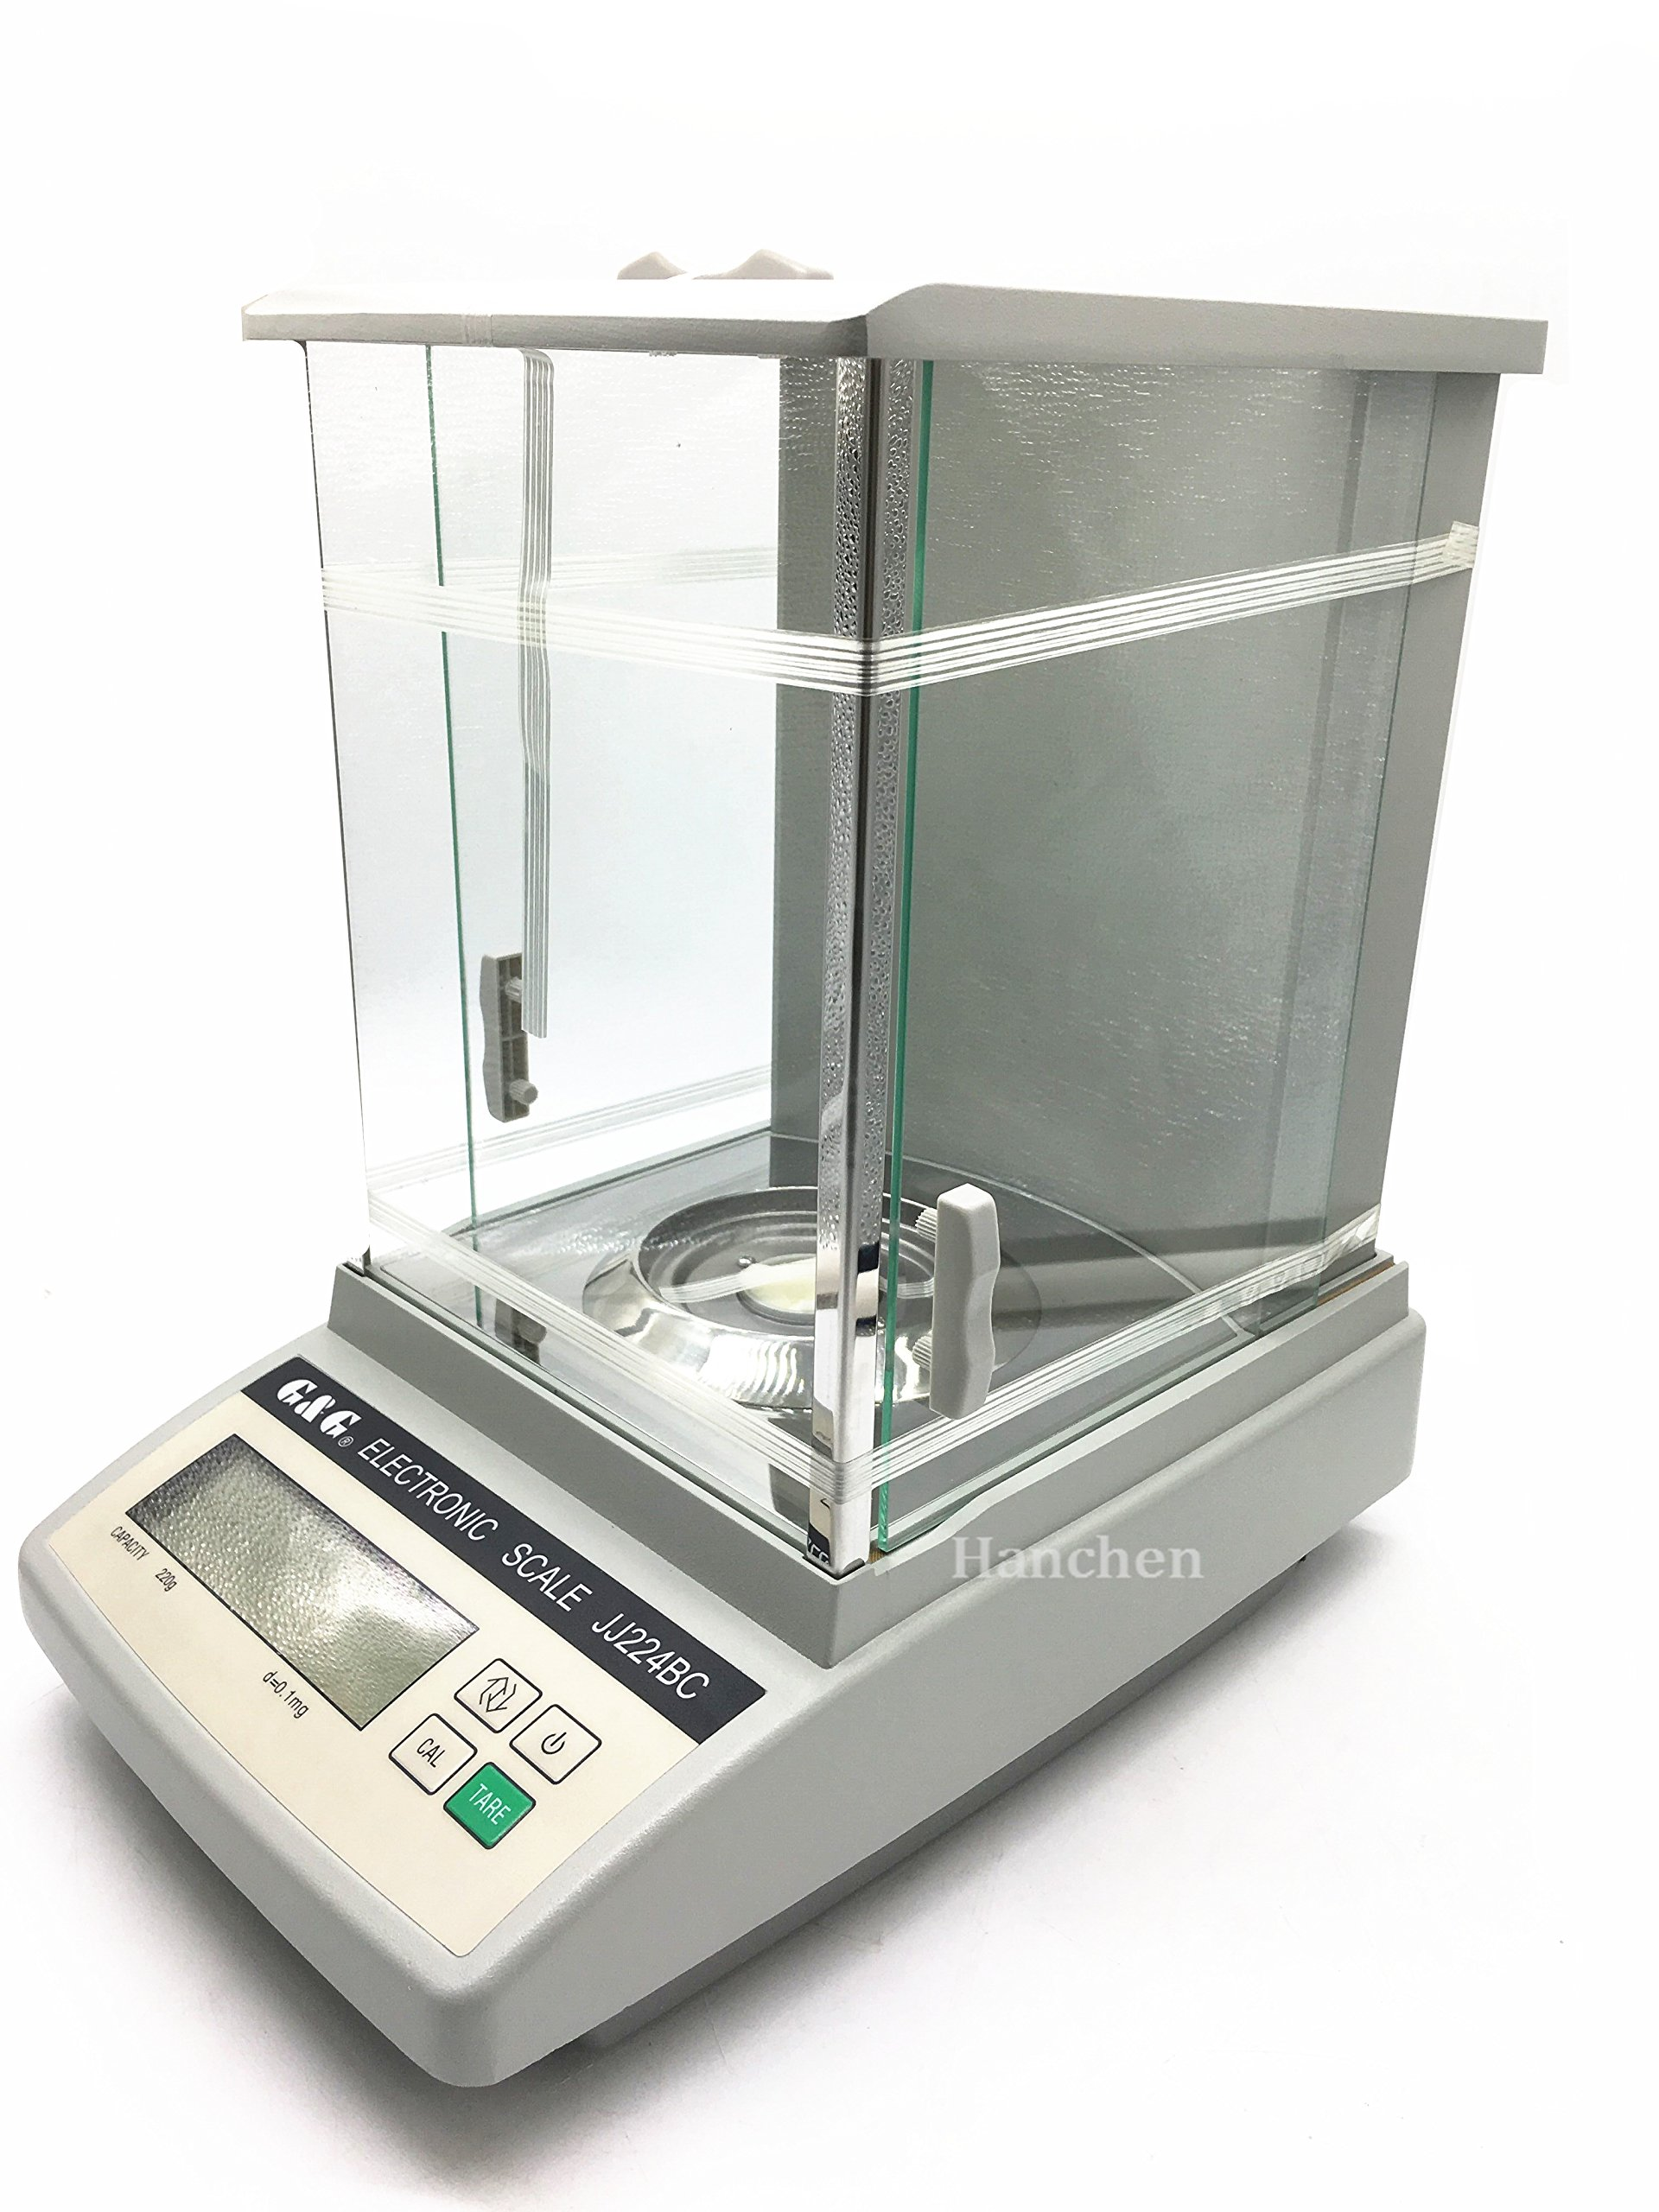 220g 0.0001g Analytical balance JJ224BC High-Precision Digital Balance Scale For Laboratory Pharmacy 220g/0.1mg 110v/220v by Hanchen Instrument®